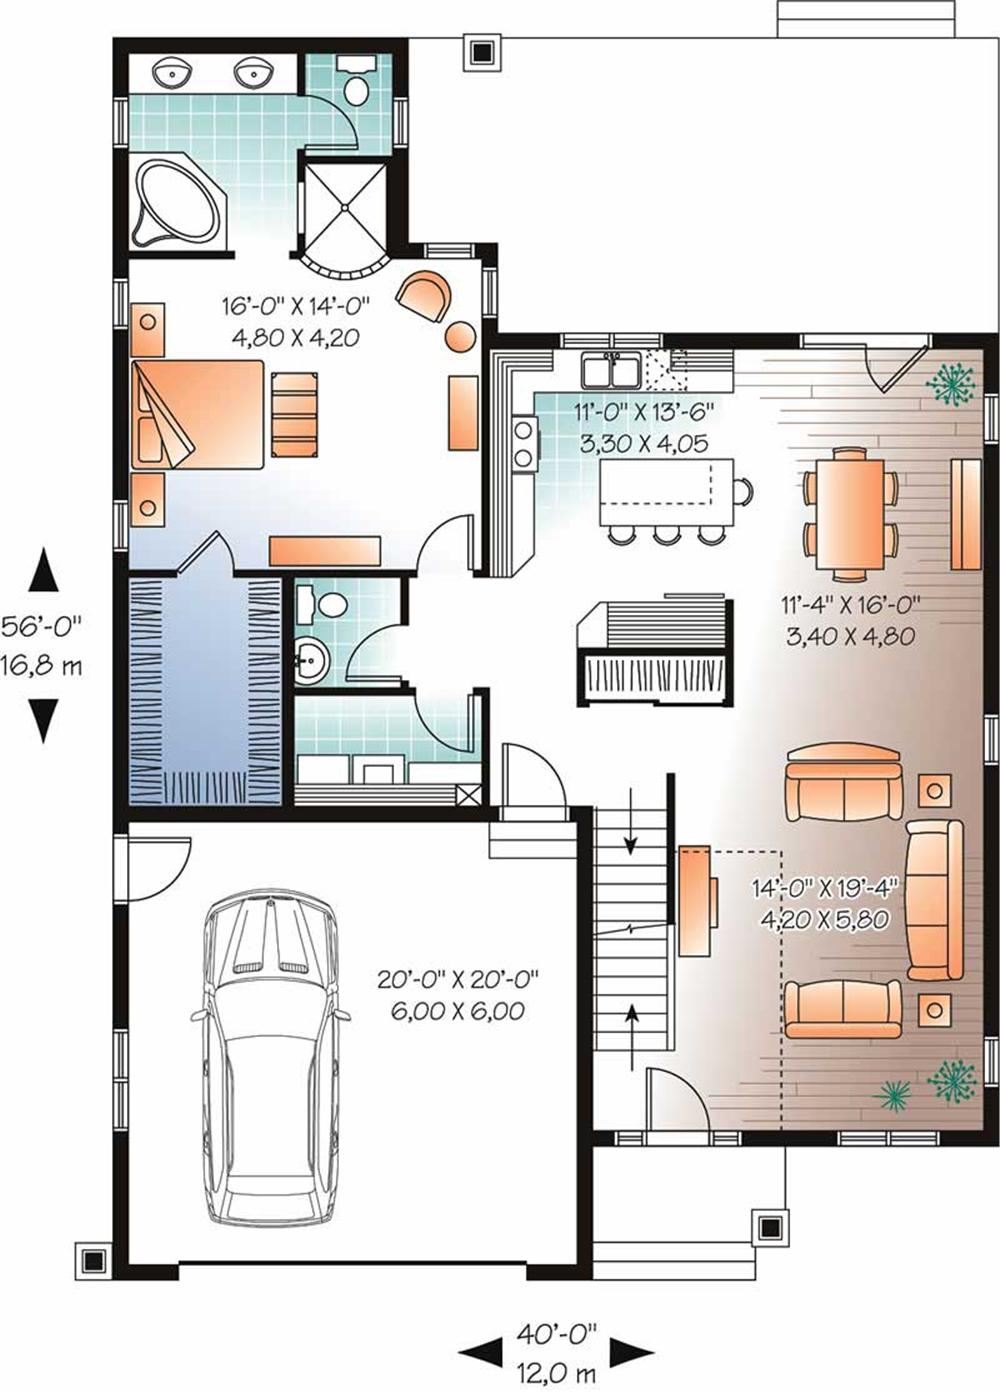 Home Plan DD-3608 First Floor